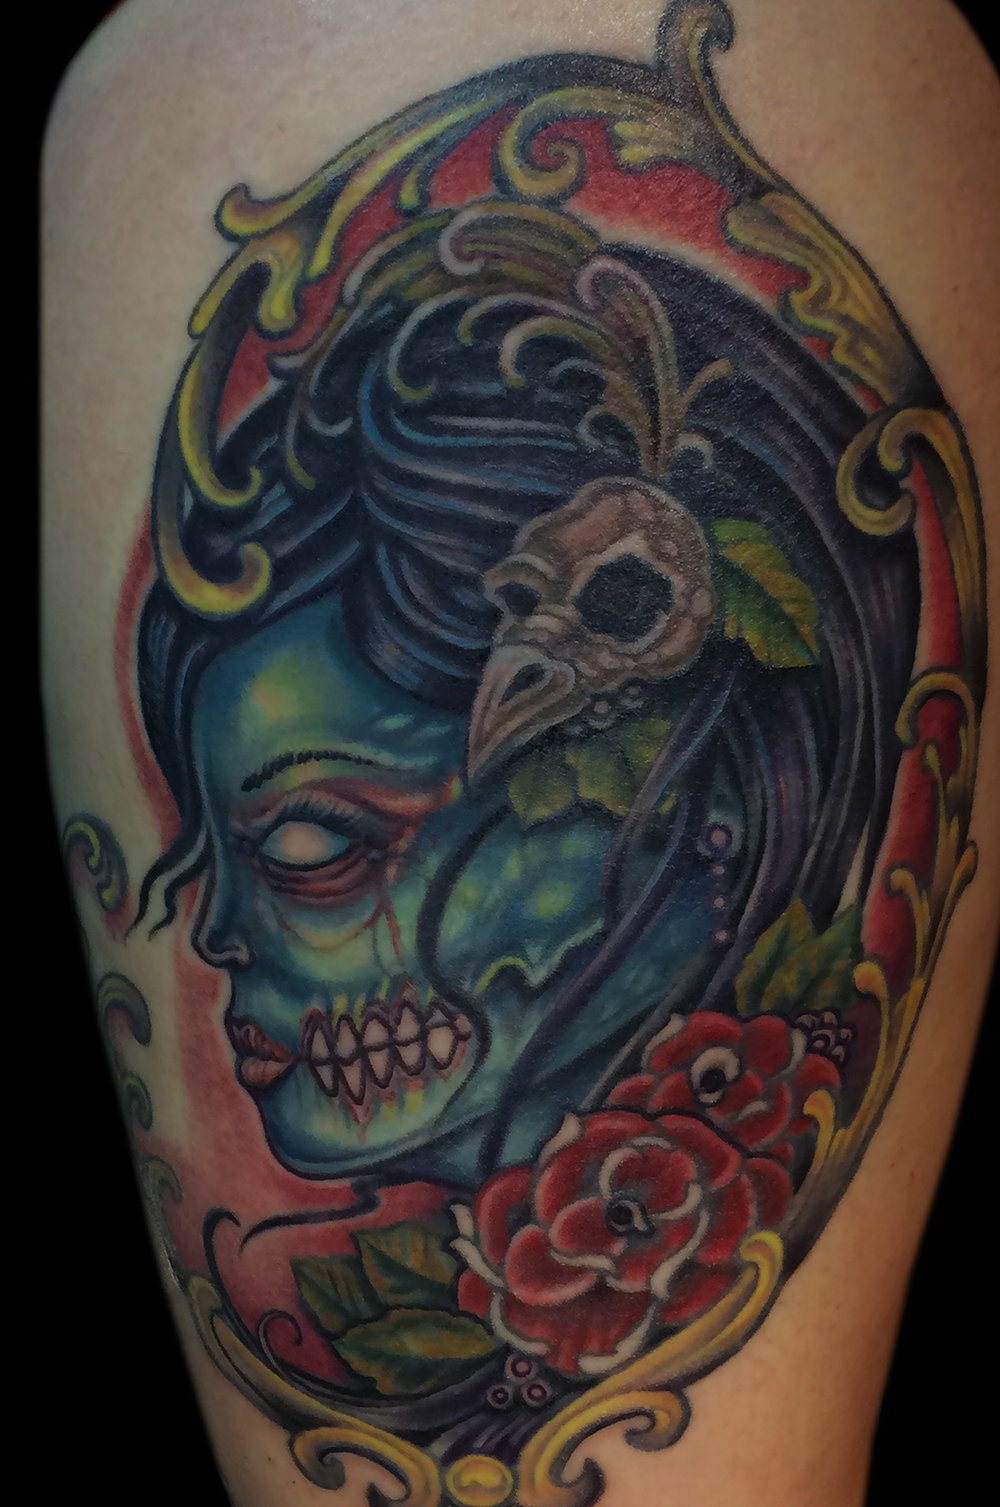 brett-herman-tattoo-002.jpg